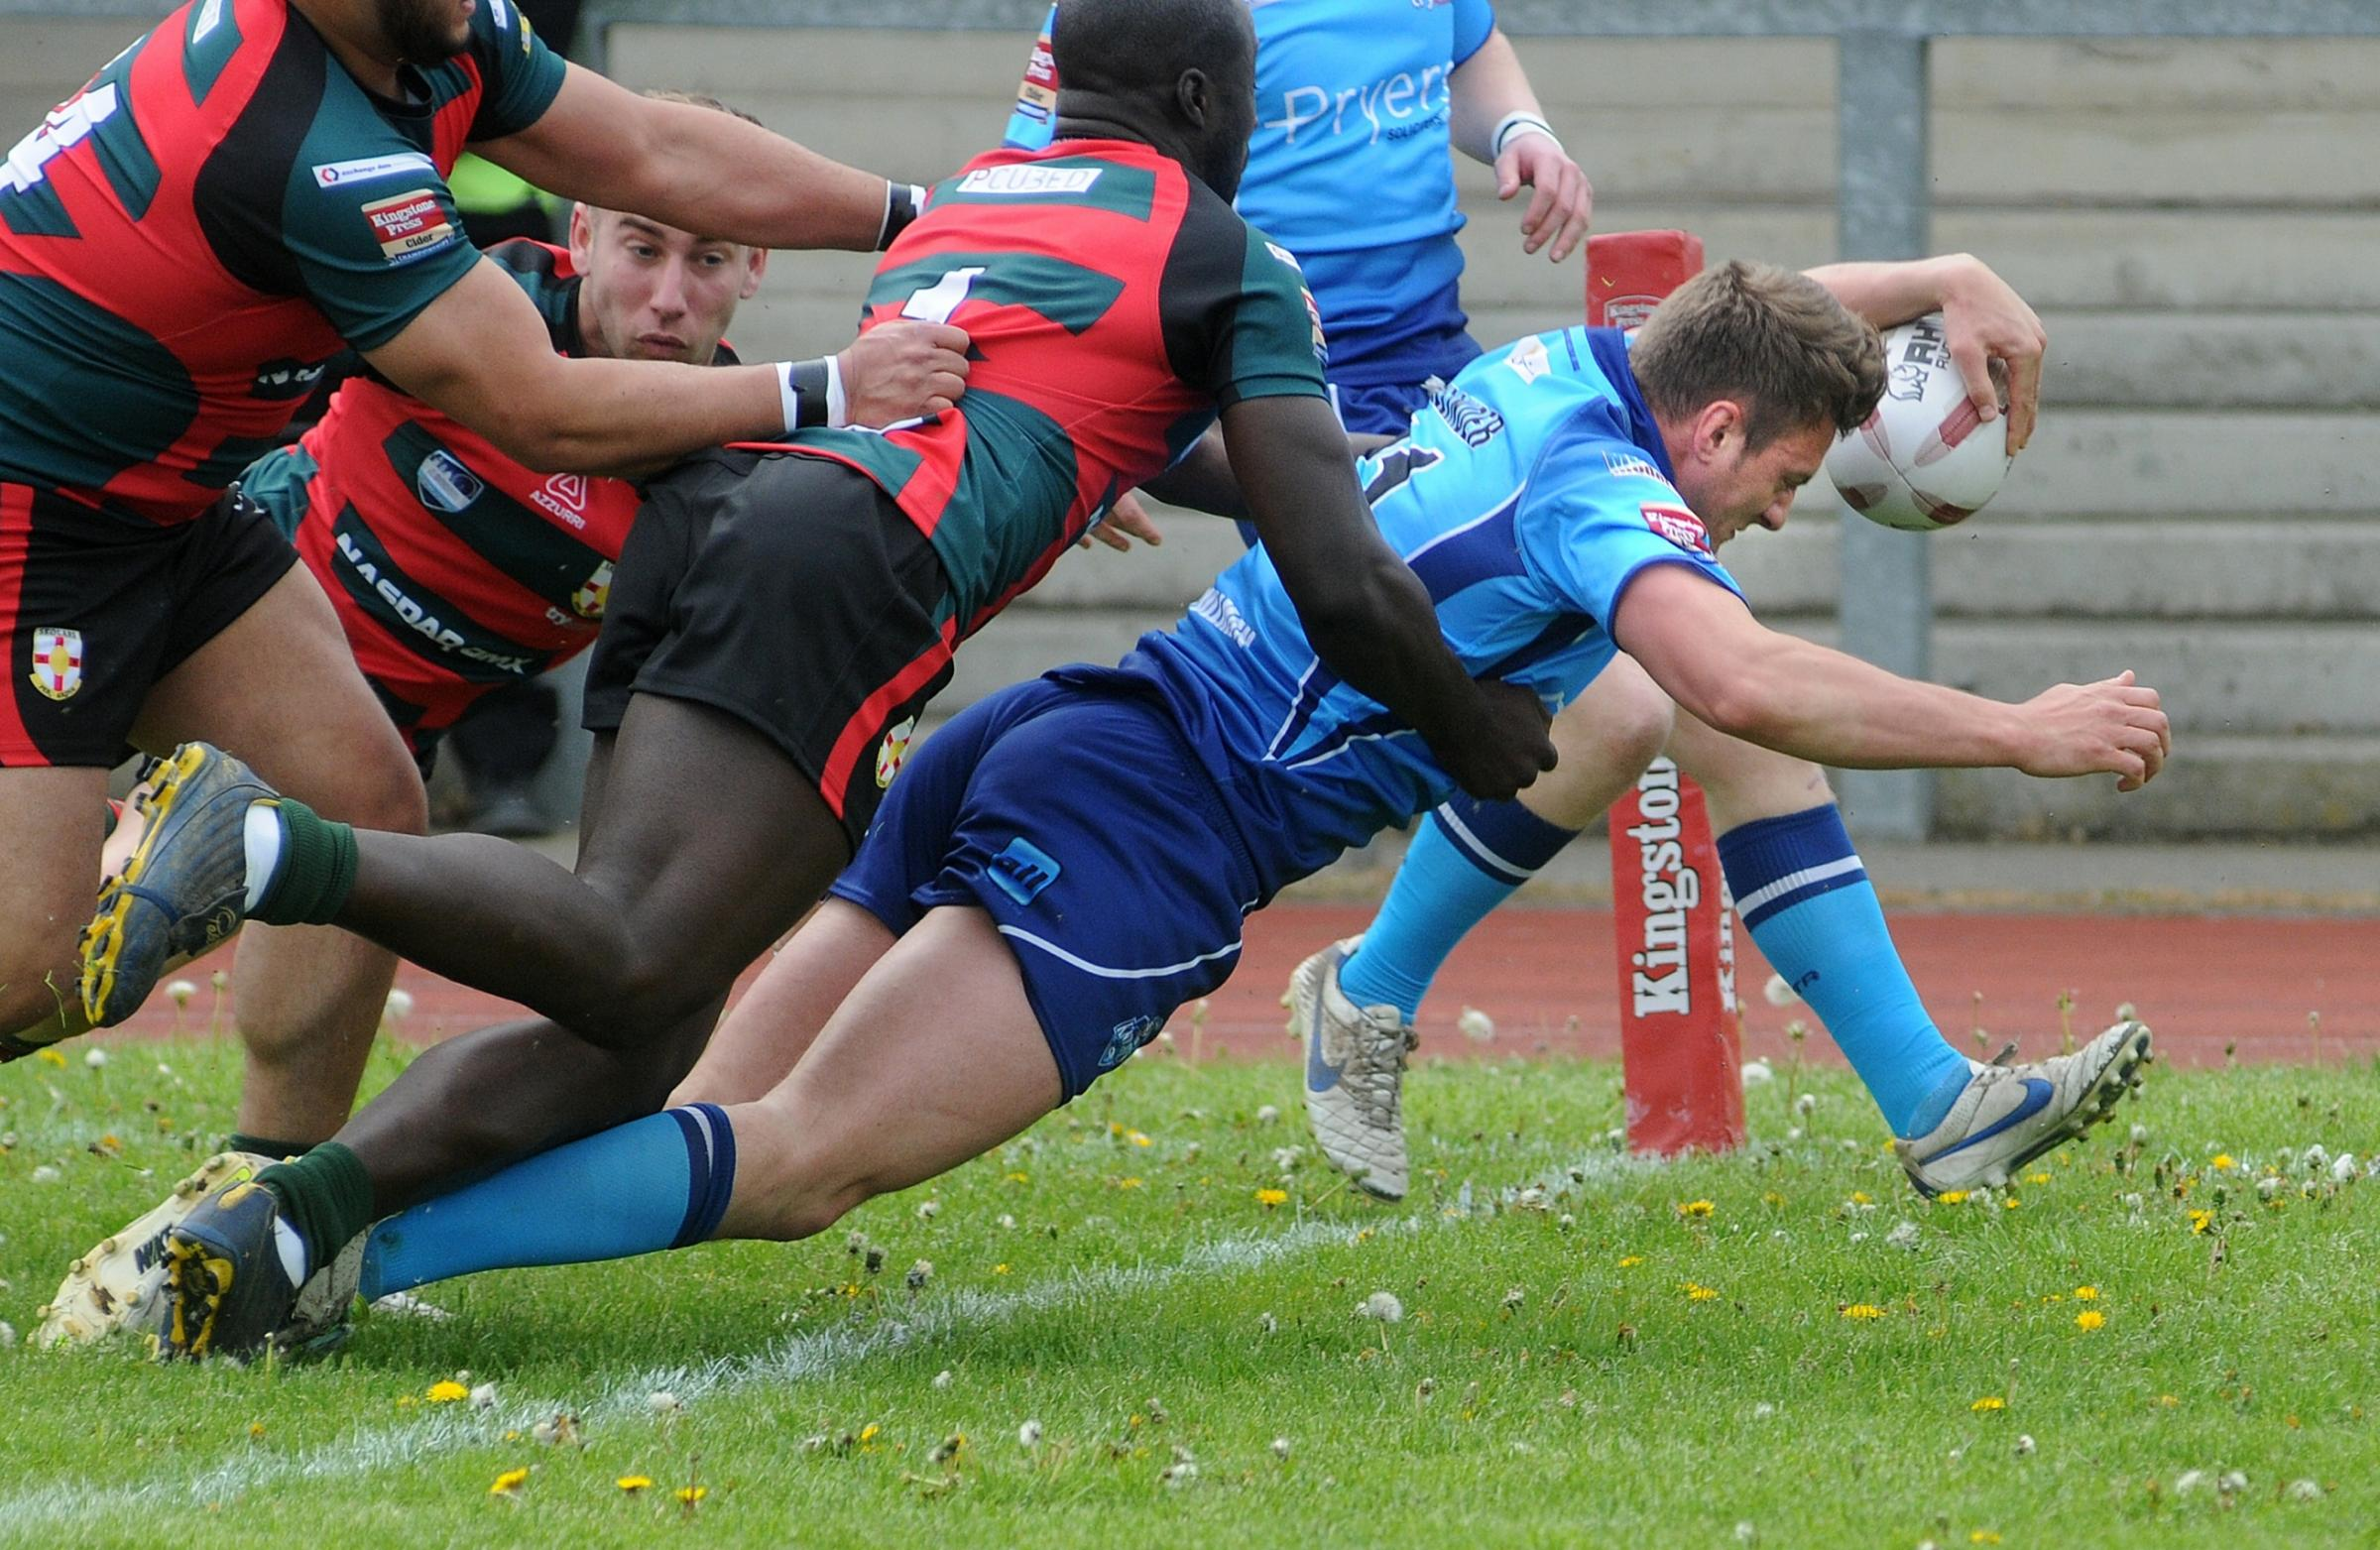 York City Knights 36, London Skolars 16